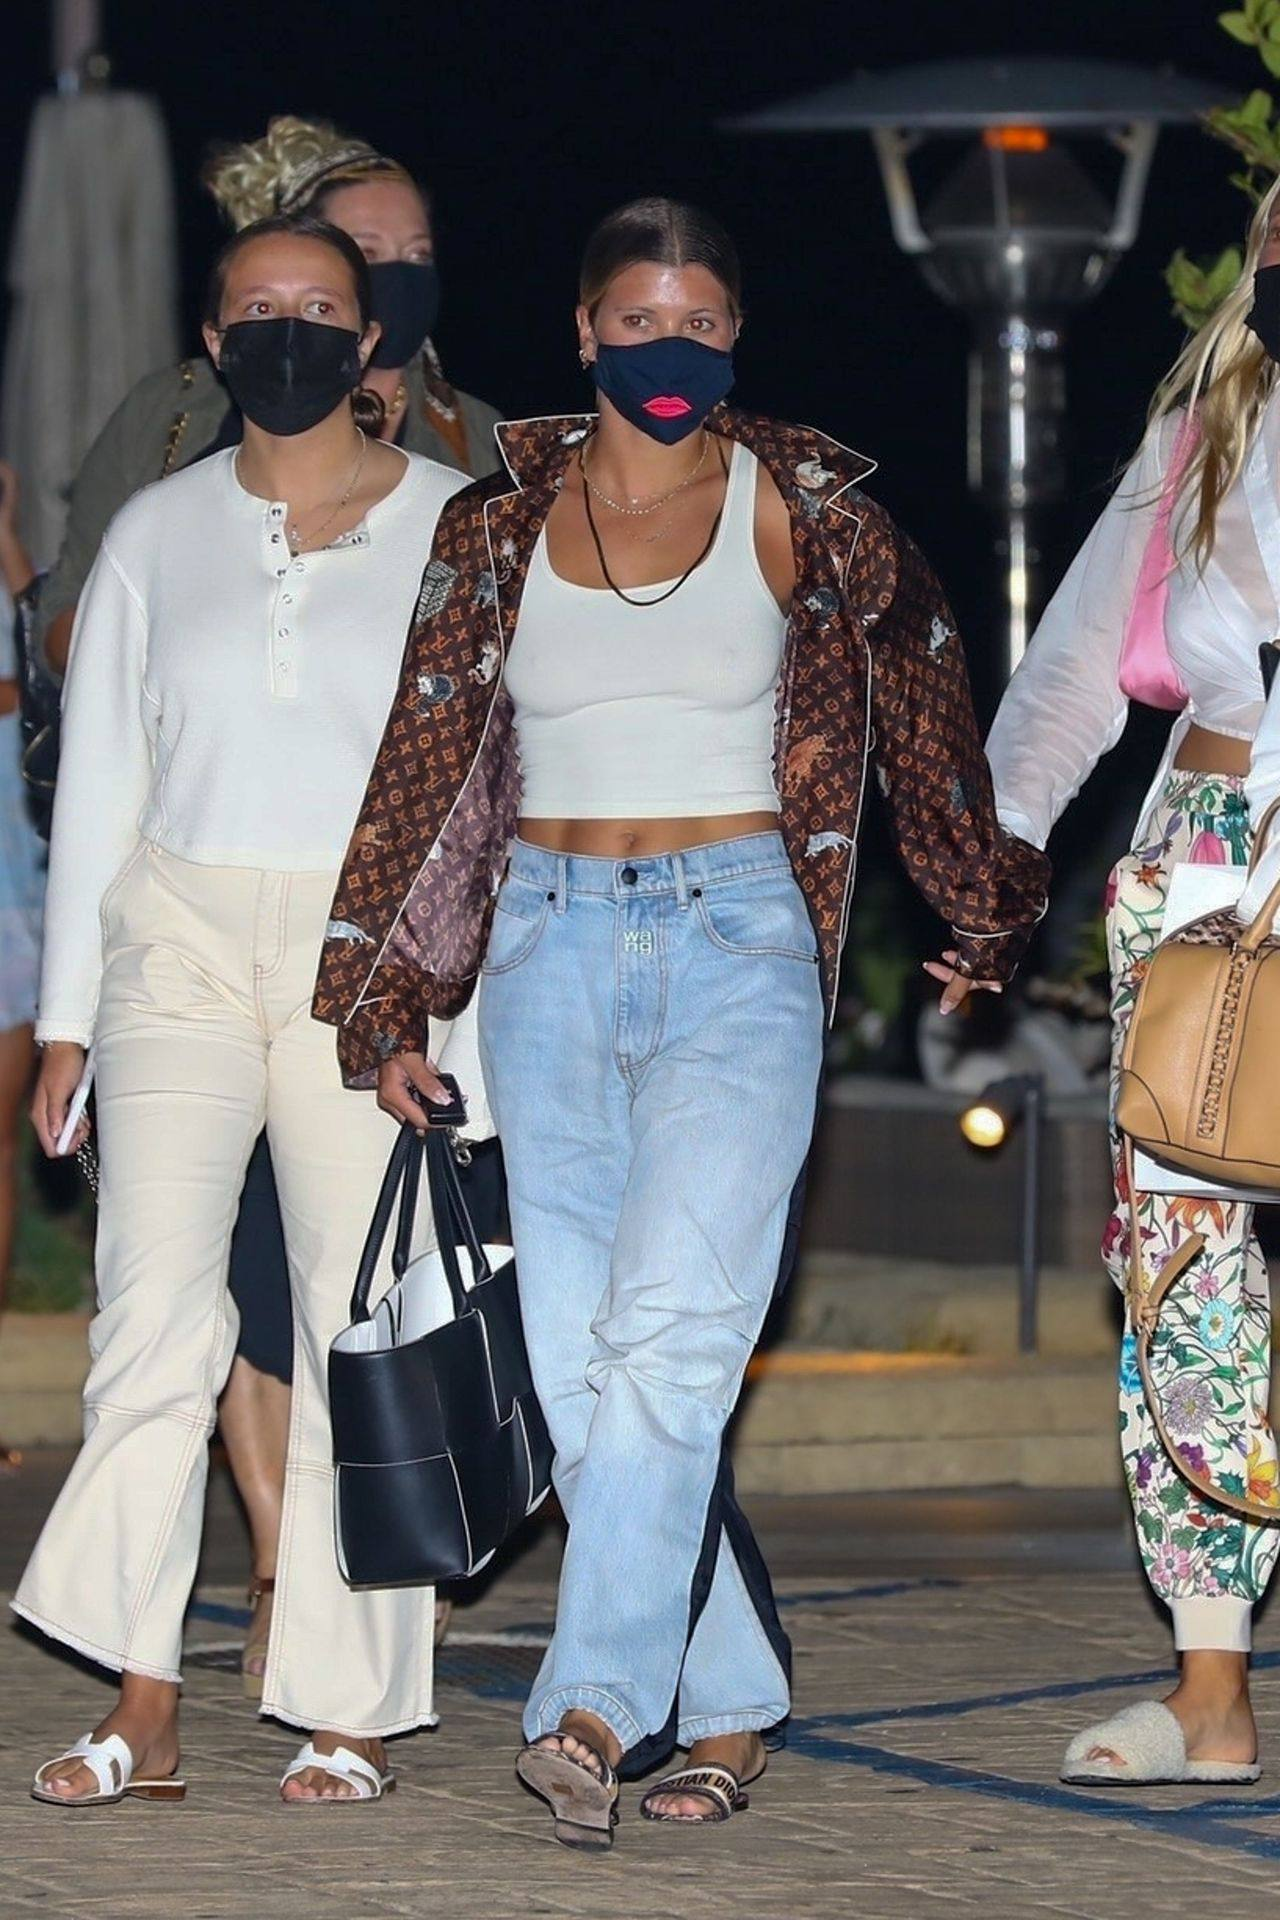 Sofia Richie Braless Boobs in White Top Out in Malibu